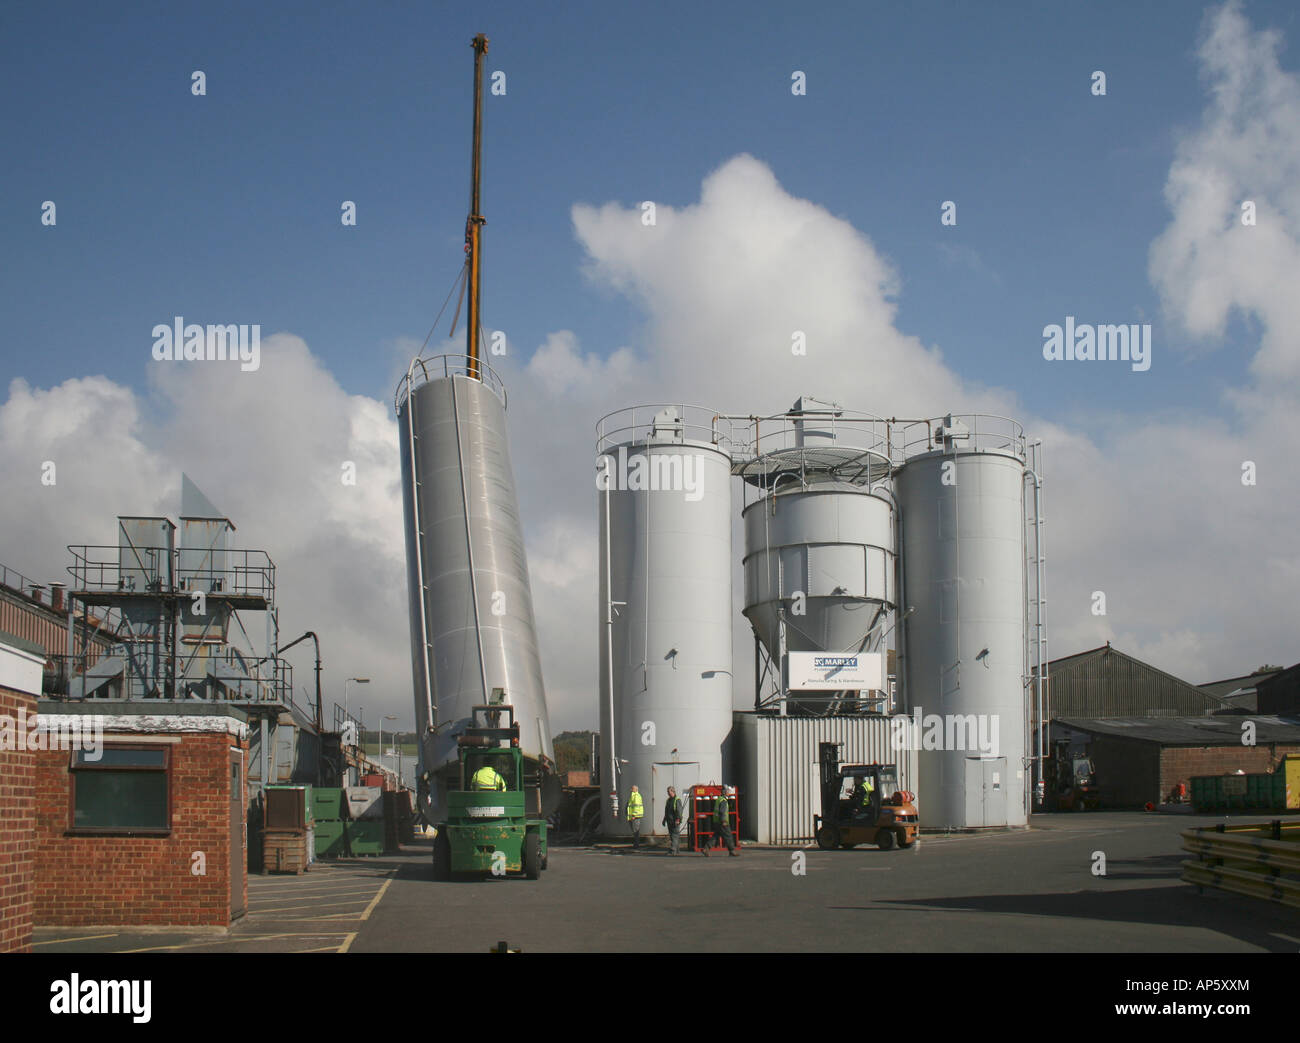 One of a set of 4 large storage silos being lifted by crane prior to its transport to a new location - Stock Image